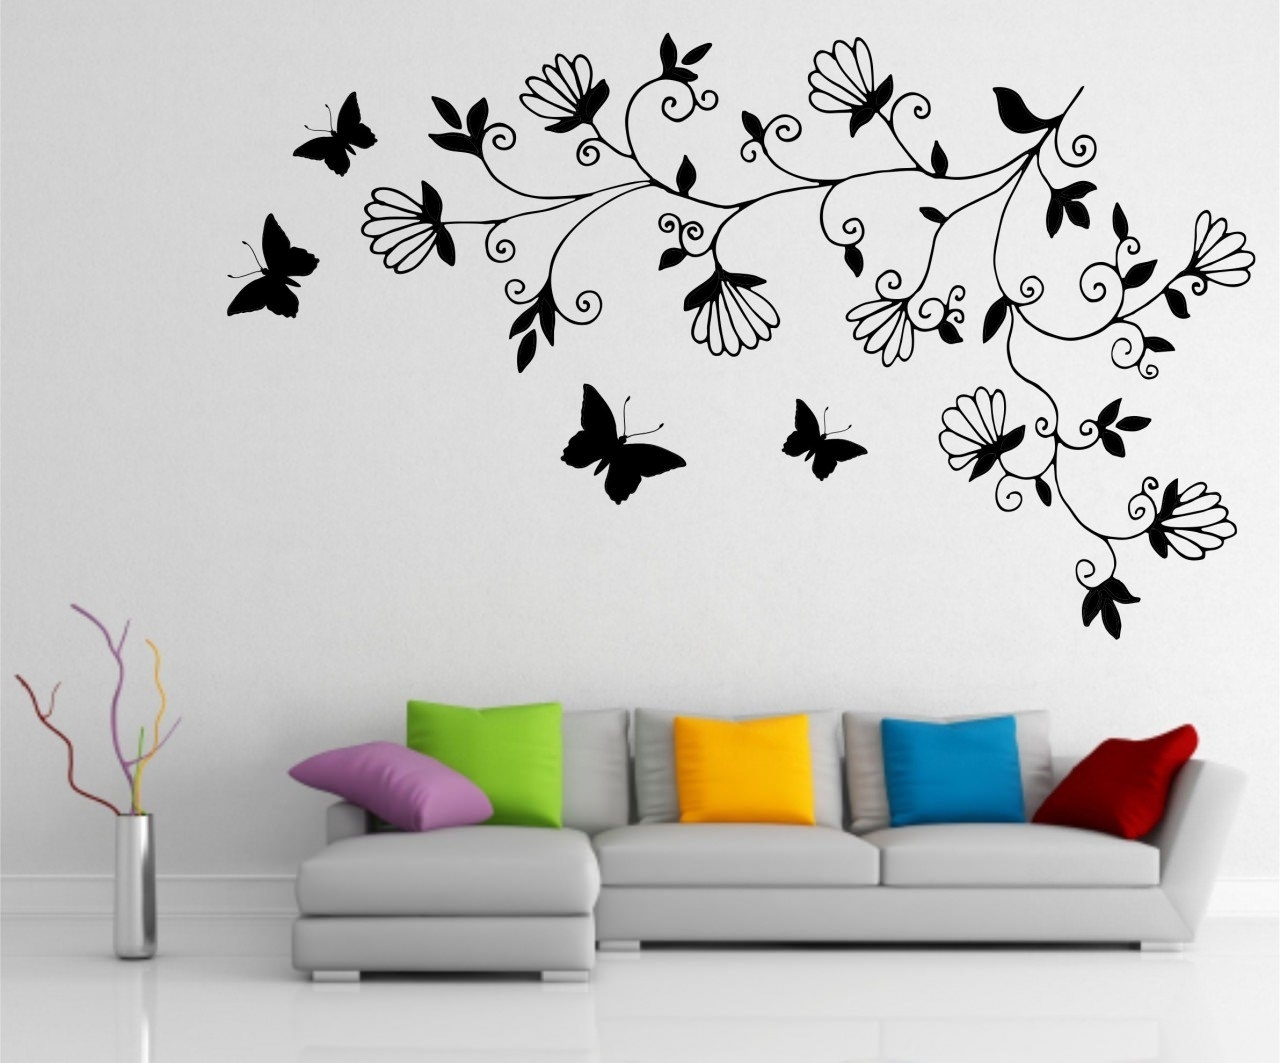 Wall Paint Designs Living Room Worthy Golime   Home Art Decor   #77394 With Regard To Living Room Painting Wall Art (Photo 10 of 20)